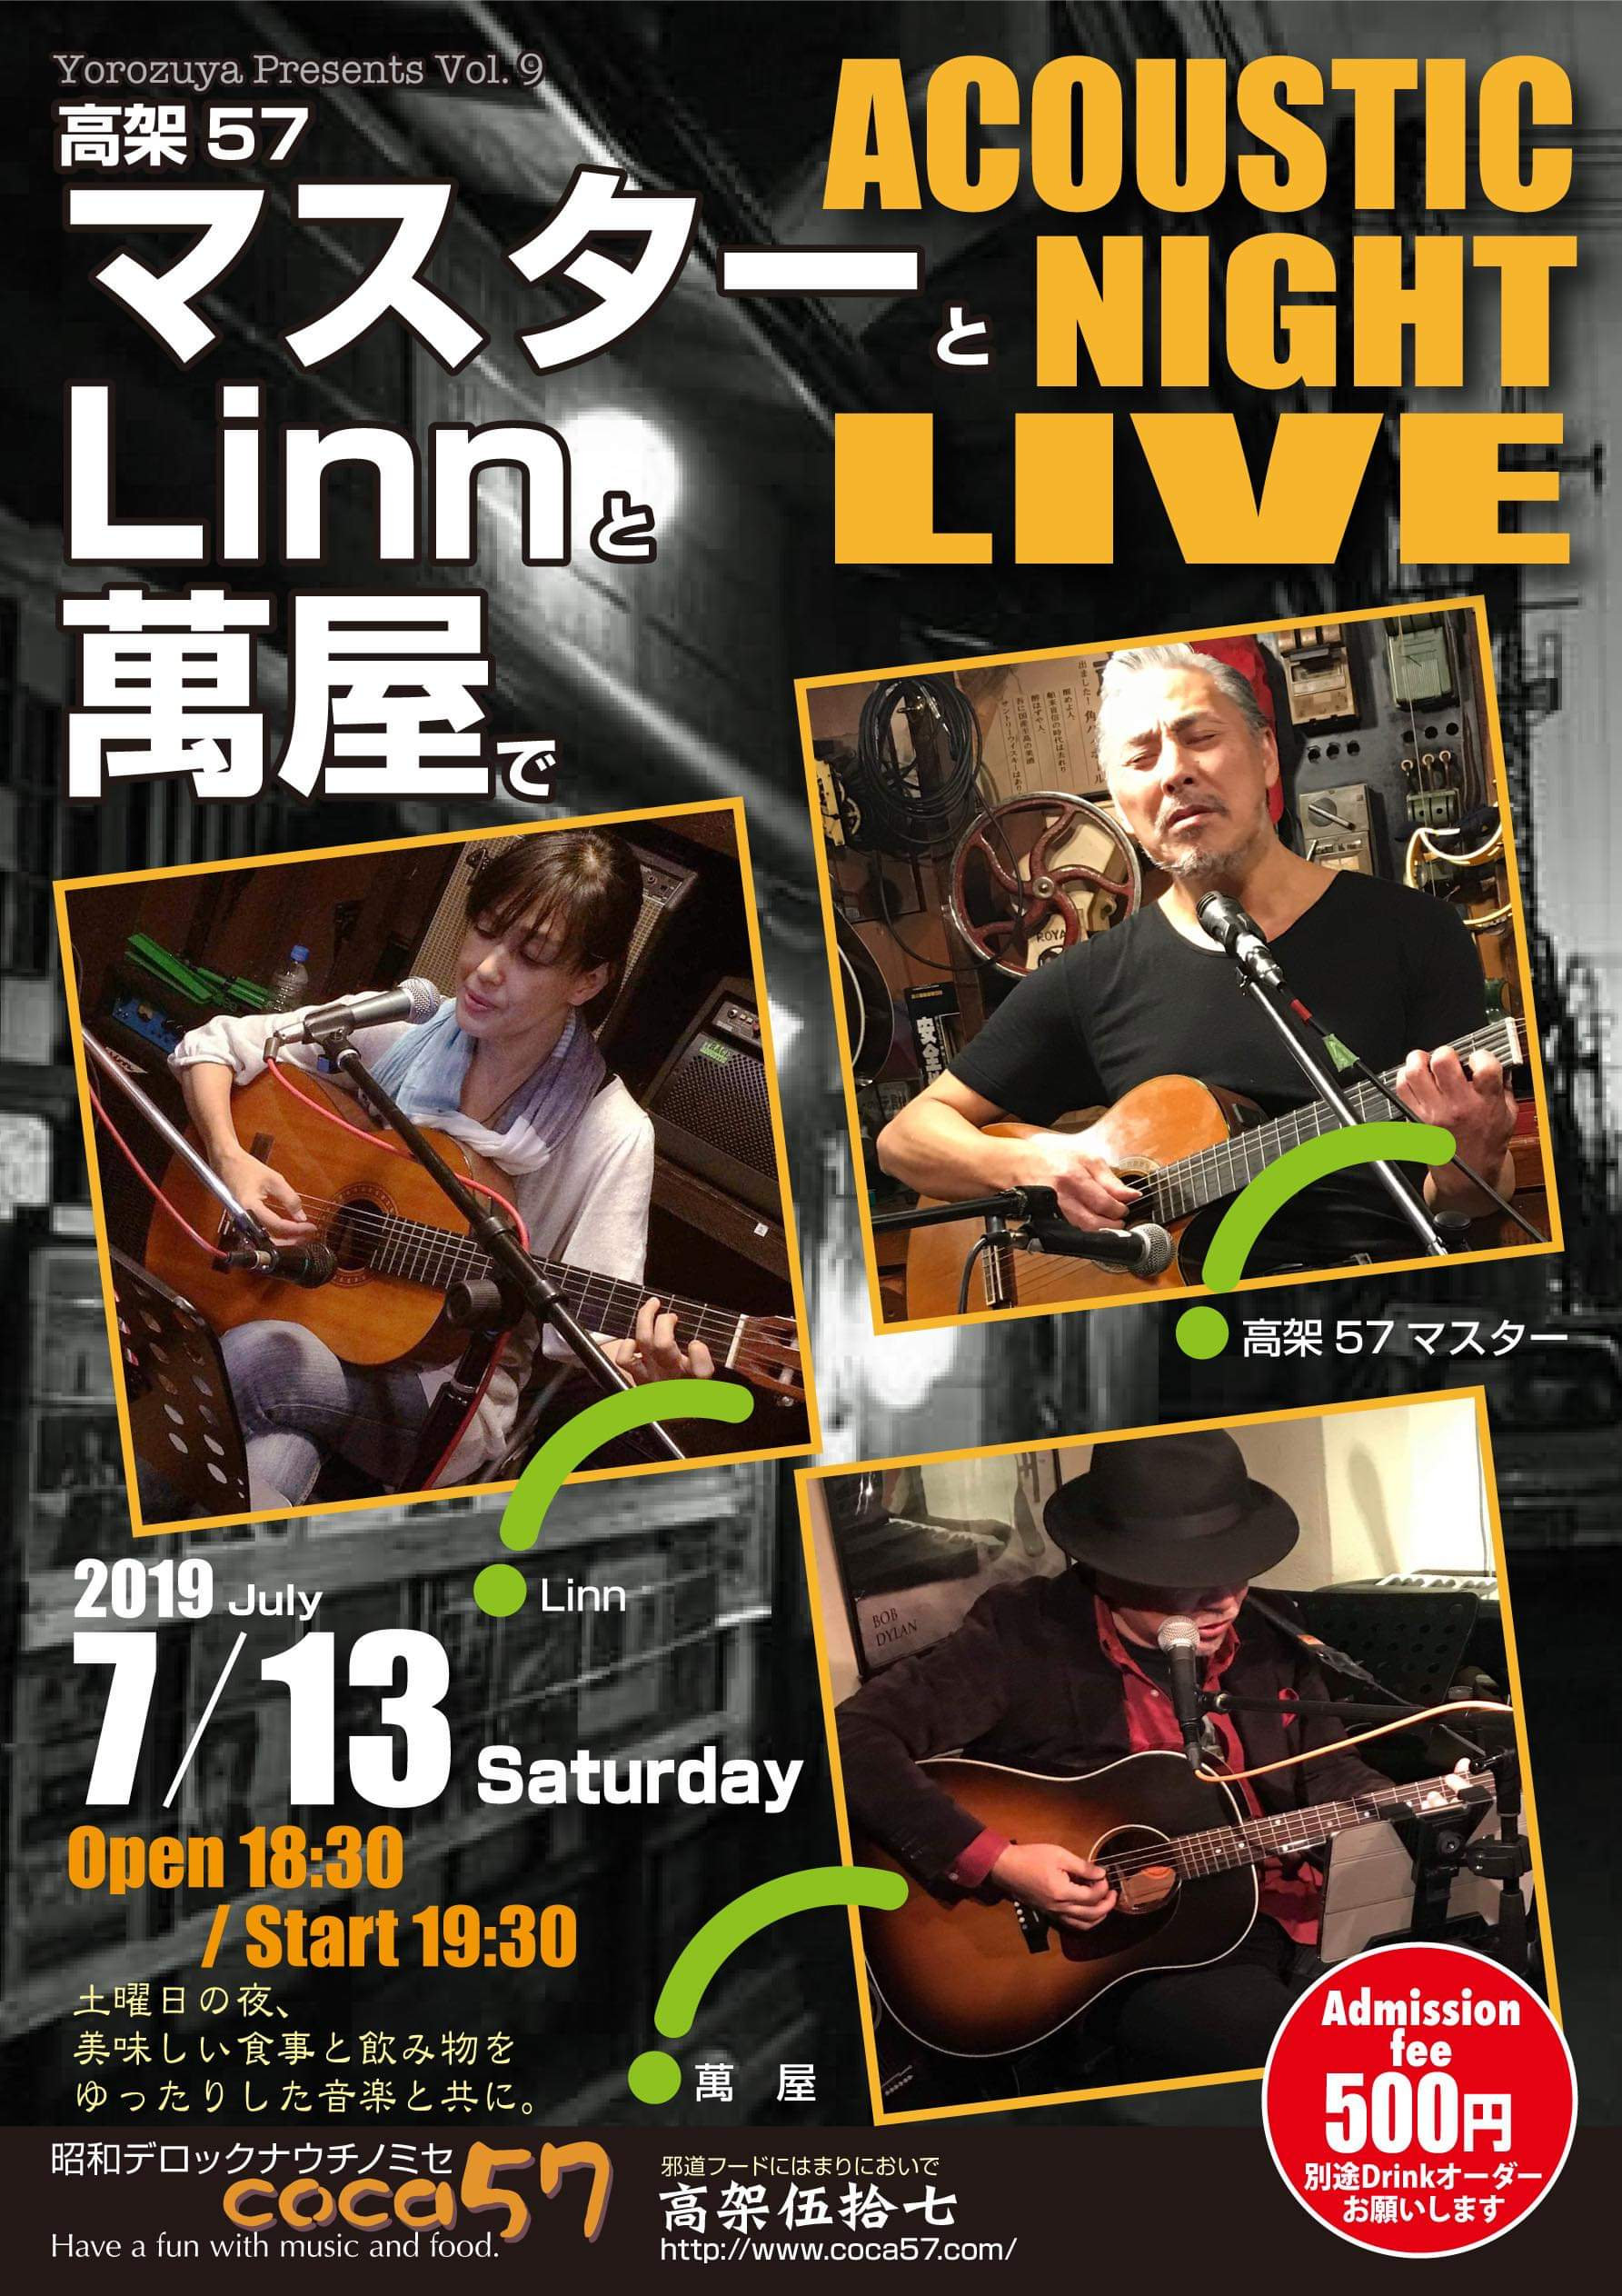 ACOUSTIC NIGHT LIVE 18時30分開場